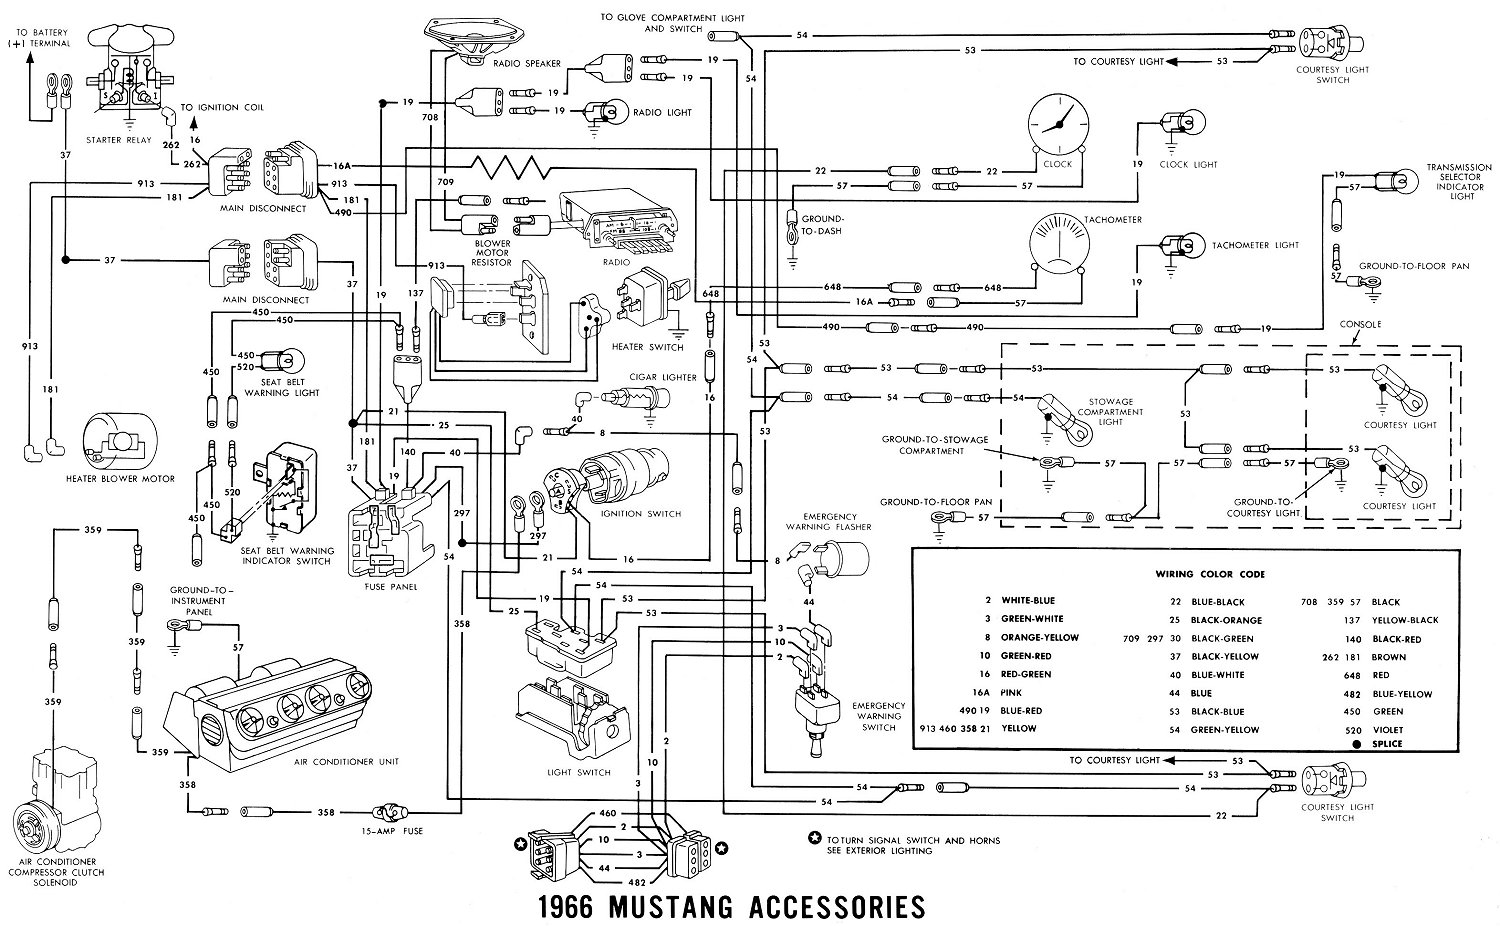 66acces1 1966 mustang wiring diagrams average joe restoration ford ignition wiring diagram at honlapkeszites.co